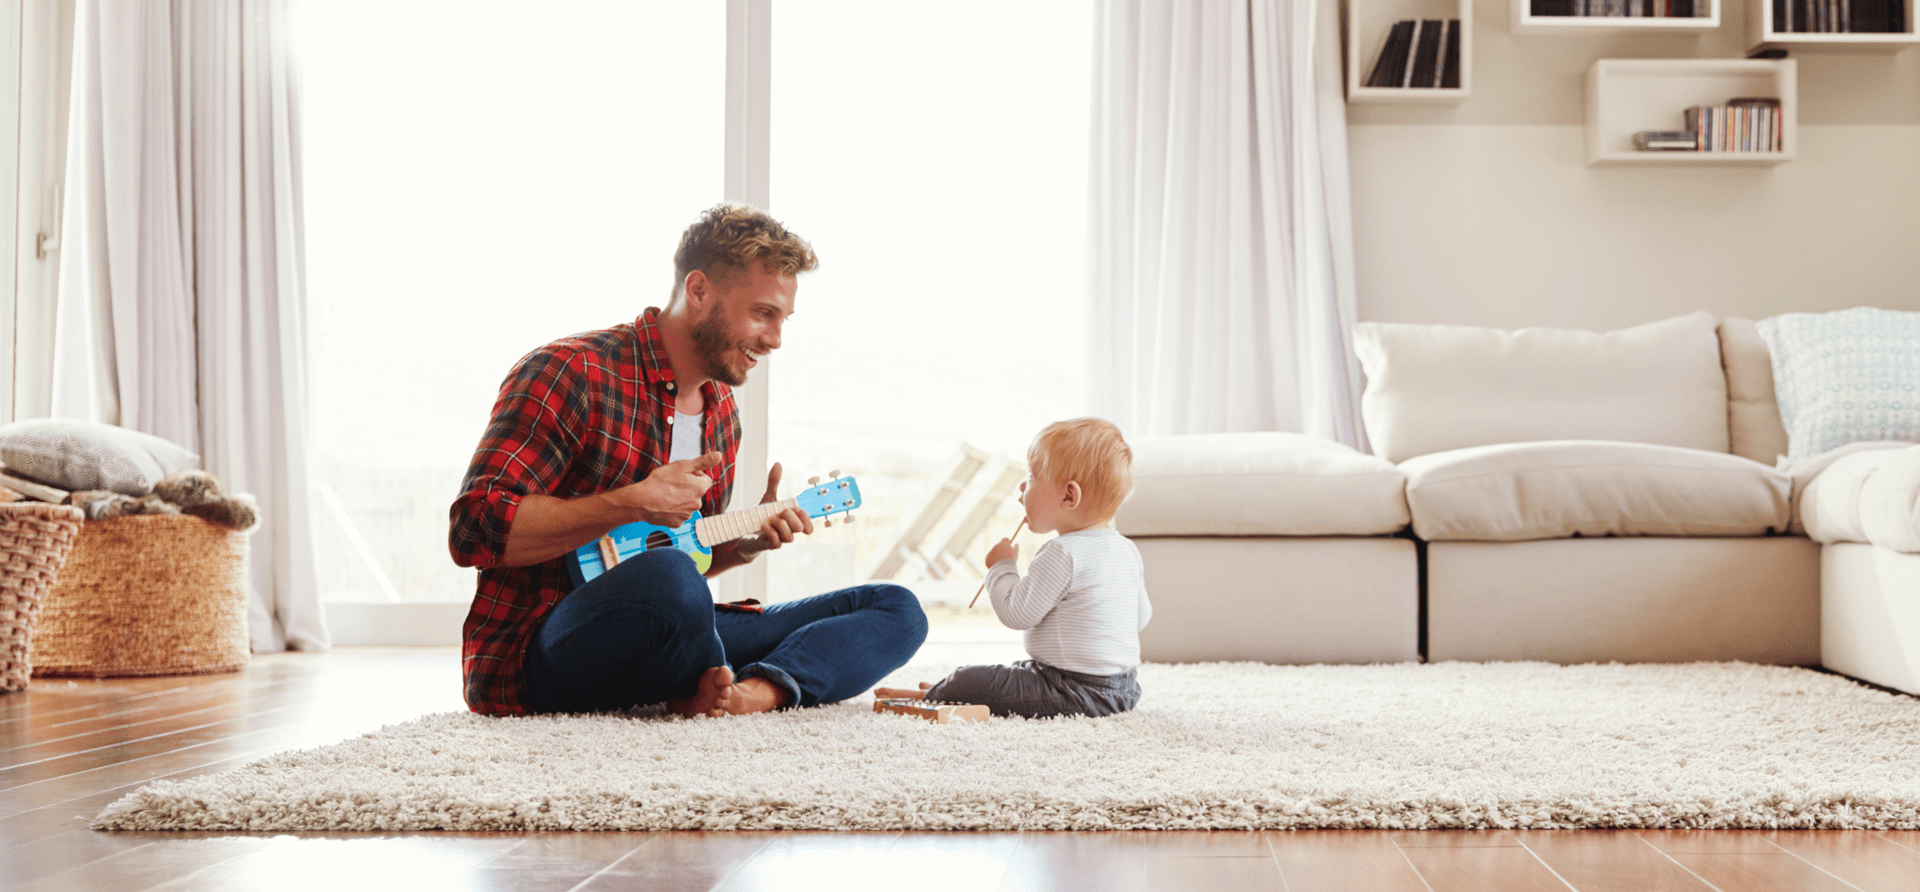 Dad smiling as he plays with young toddler's toy guitar, toddler looks up at him in a light and airy room